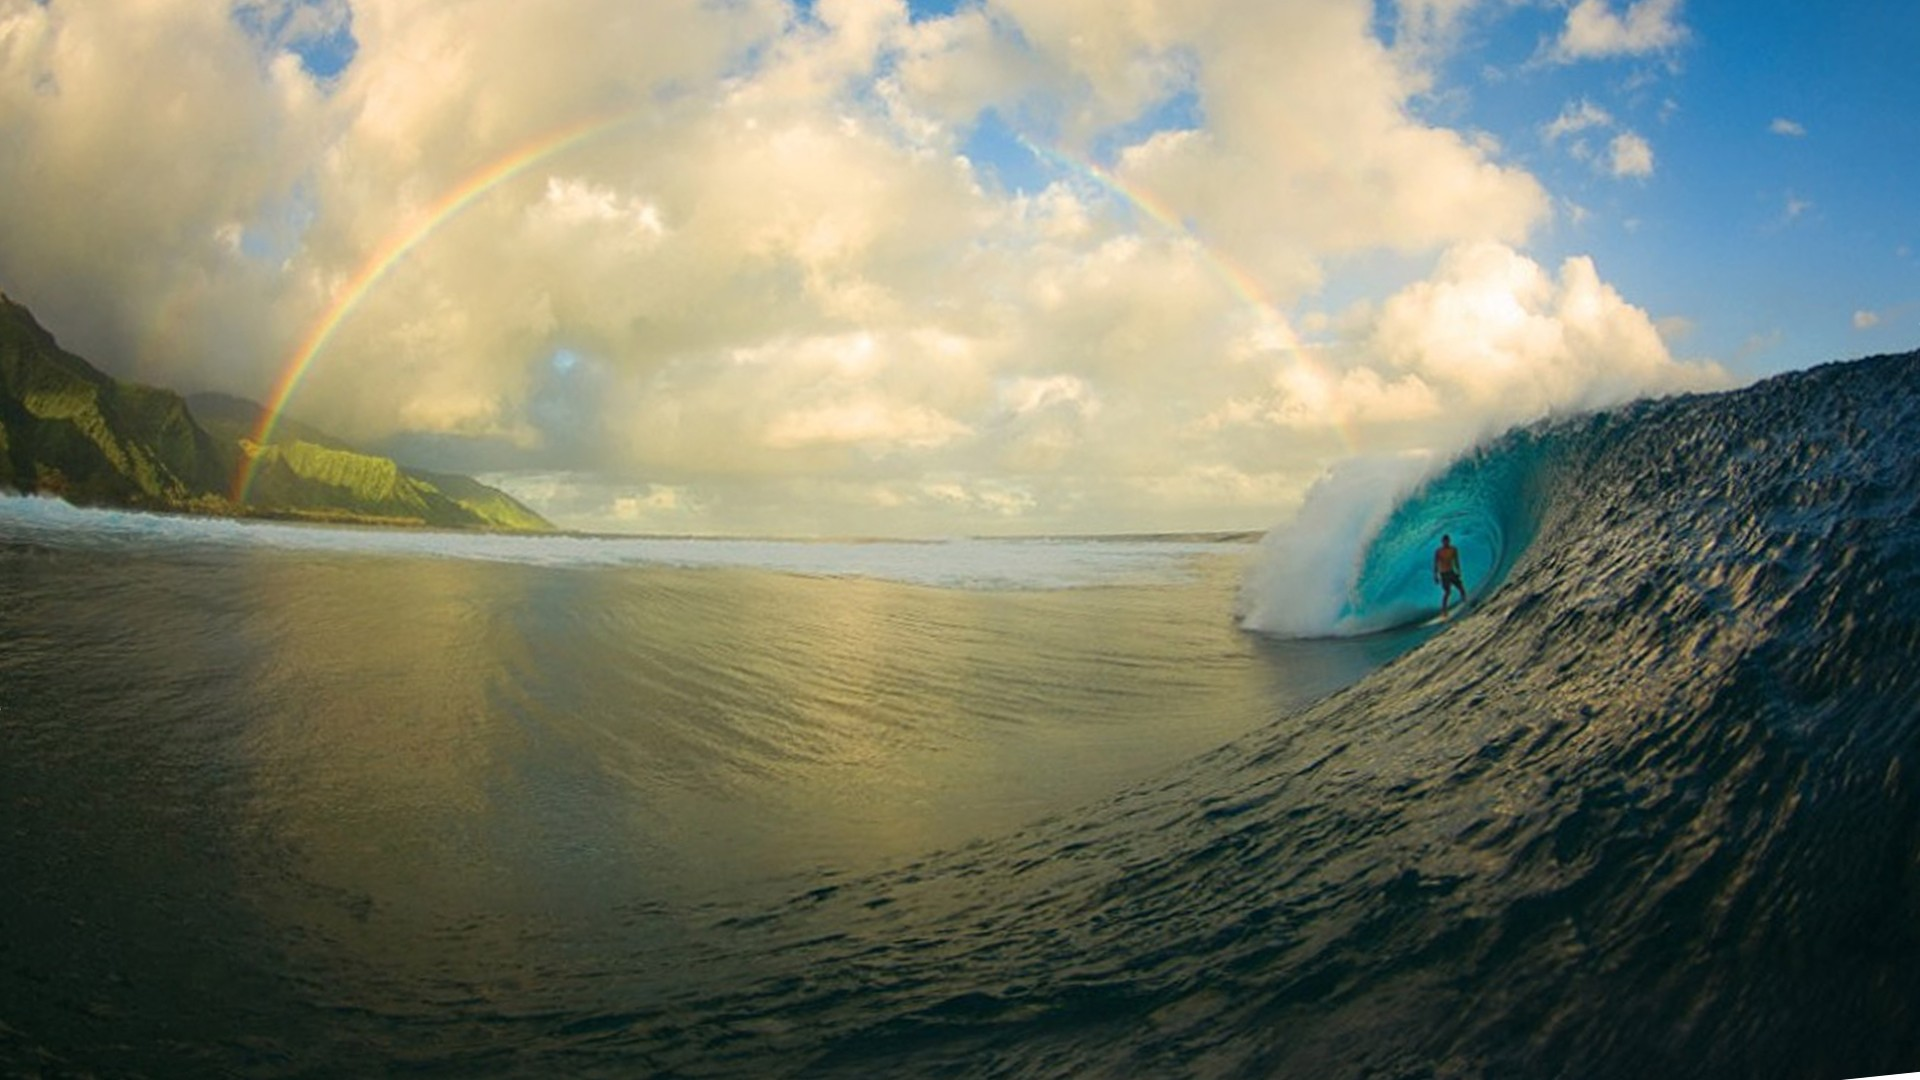 Surfing Rainbows 21662 Wallpaper Wallpaper hd 1920x1080